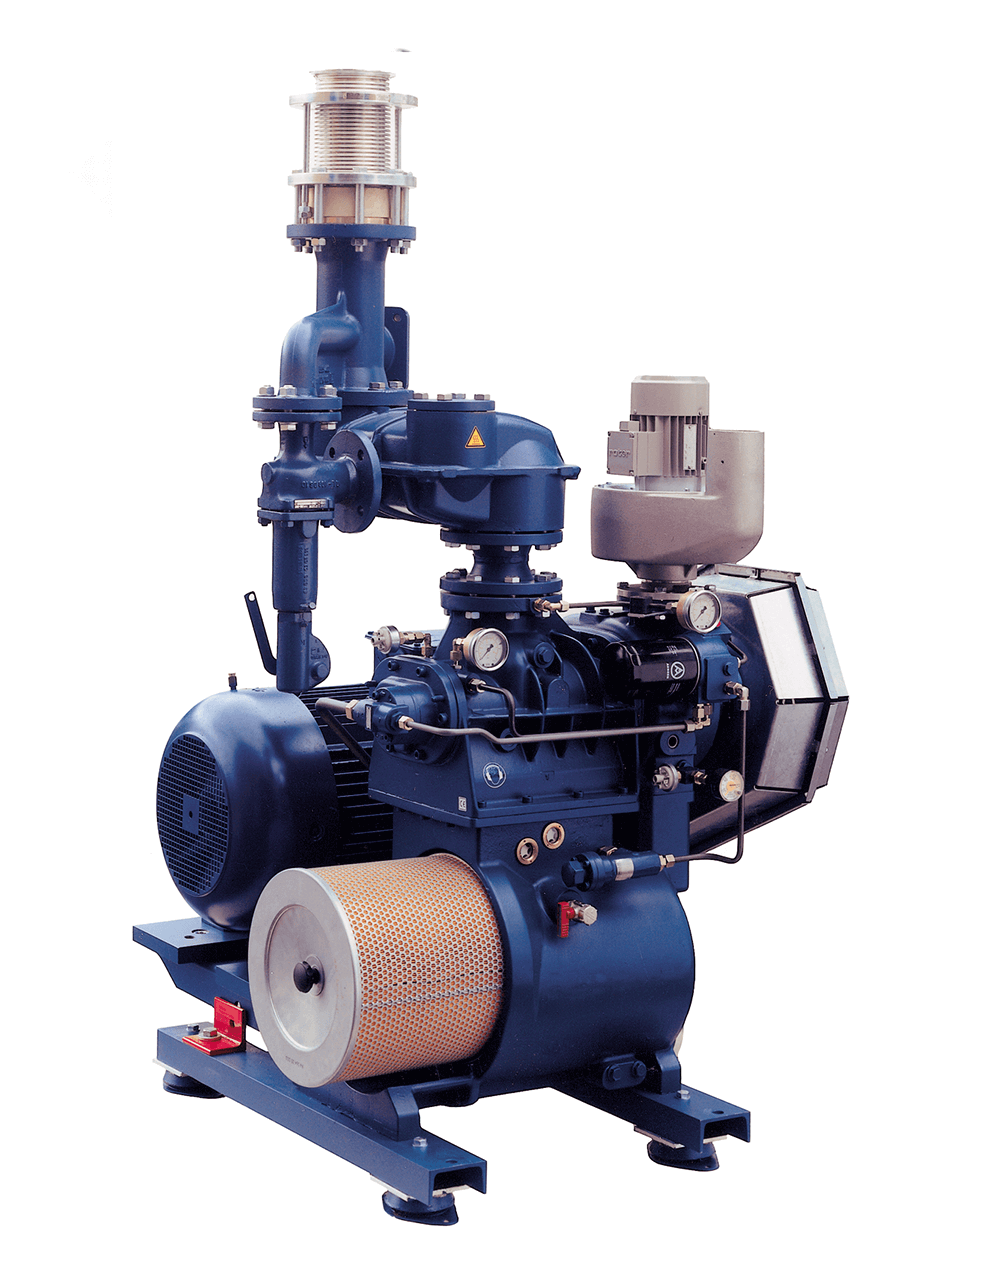 Picture of the new screw compressor series DELTA SCREW